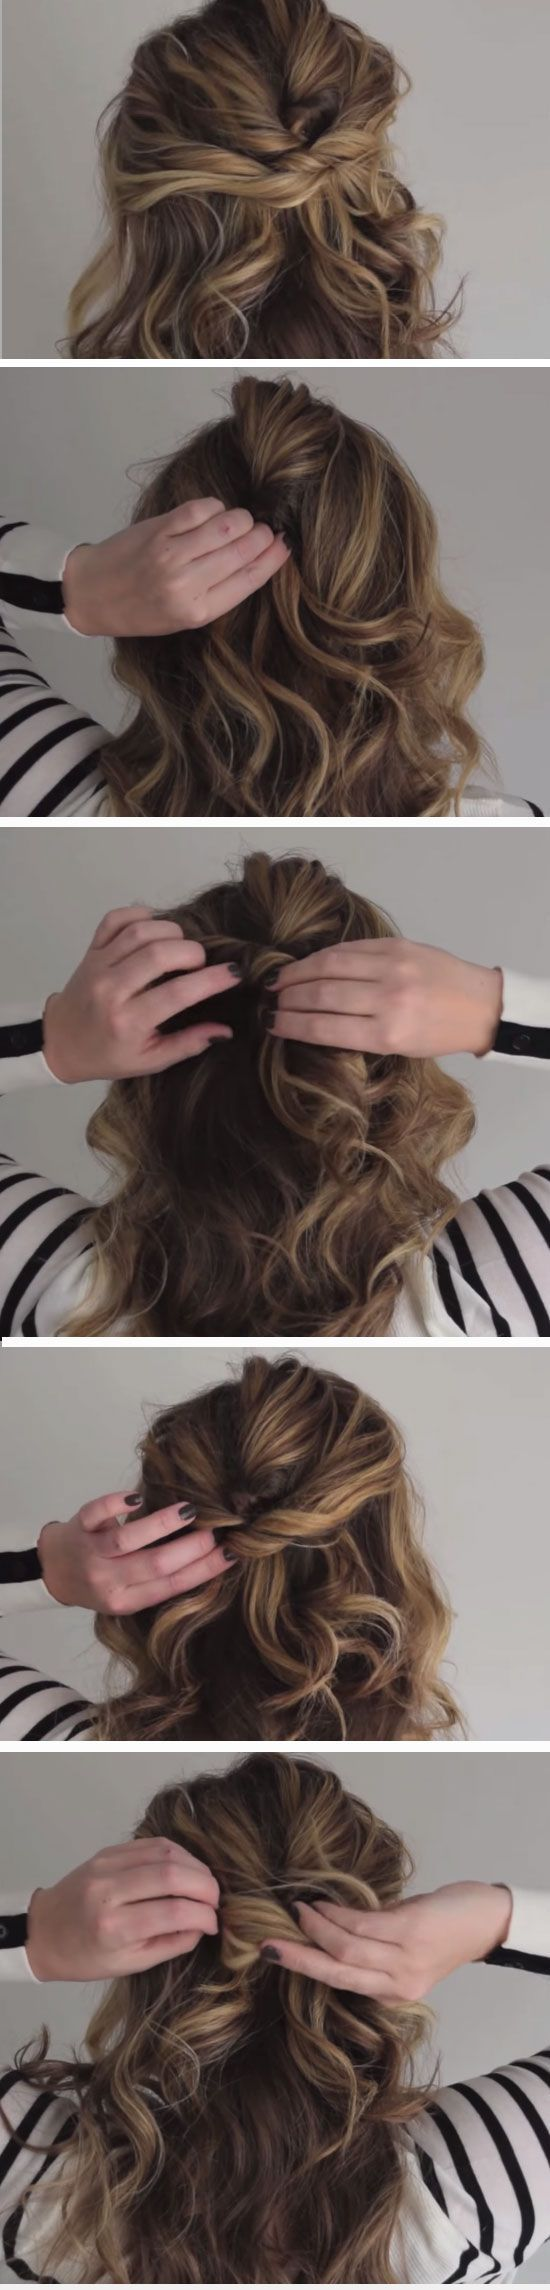 The twisted half up diy wedding hairstyles for medium hair easy